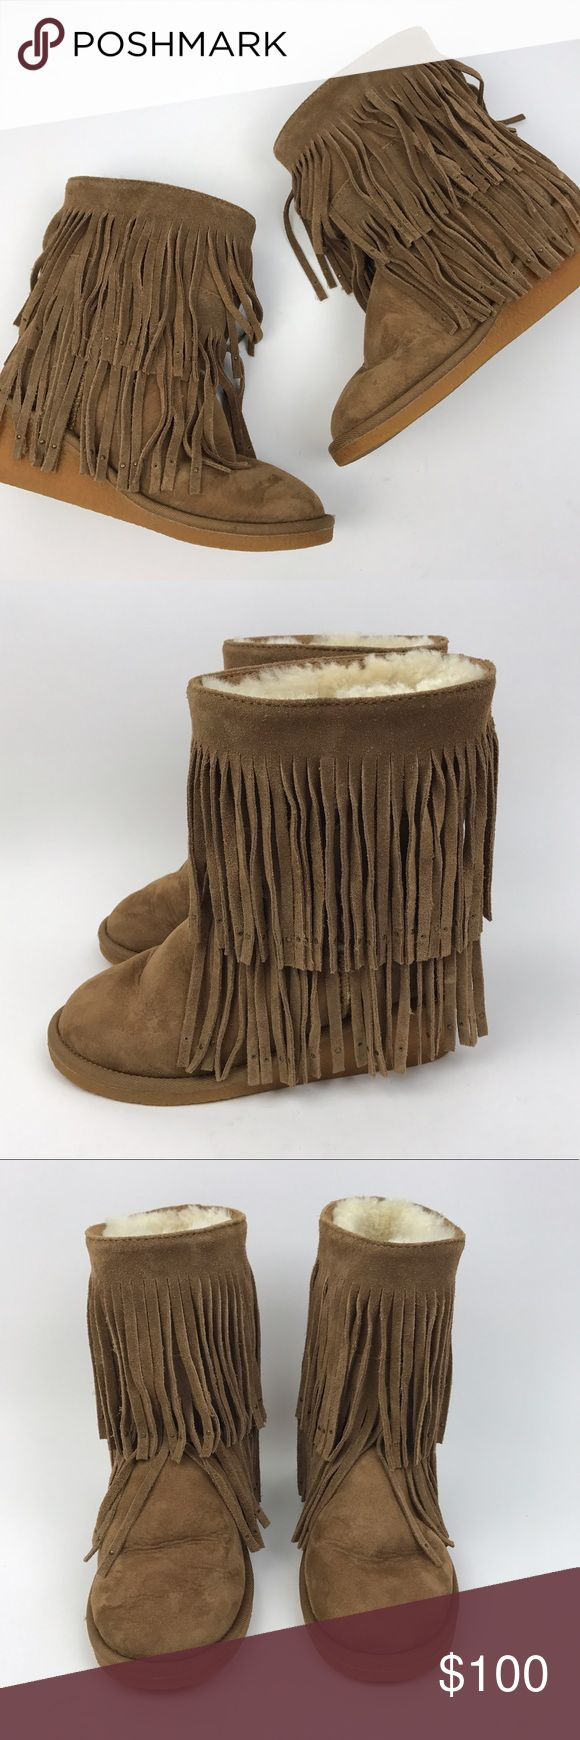 """🚫Koolaburra Savannity II Suede Fringe Wedge Boots Celebrity favorite style. Cozy Shearling lined Suede boots. Double row of Fringe accented with tiny micro studs. Low wedge heel. Chestnut tan color. As seen on Kate Hudson, Ariana Grande, Haylie Duff, and more.  🔹Shaft Height: 7"""" 🔹Heel Height: 2"""" 🔹Condition: Excellent pre-owned condition. Light signs Koolaburra Shoes Winter & Rain Boots"""